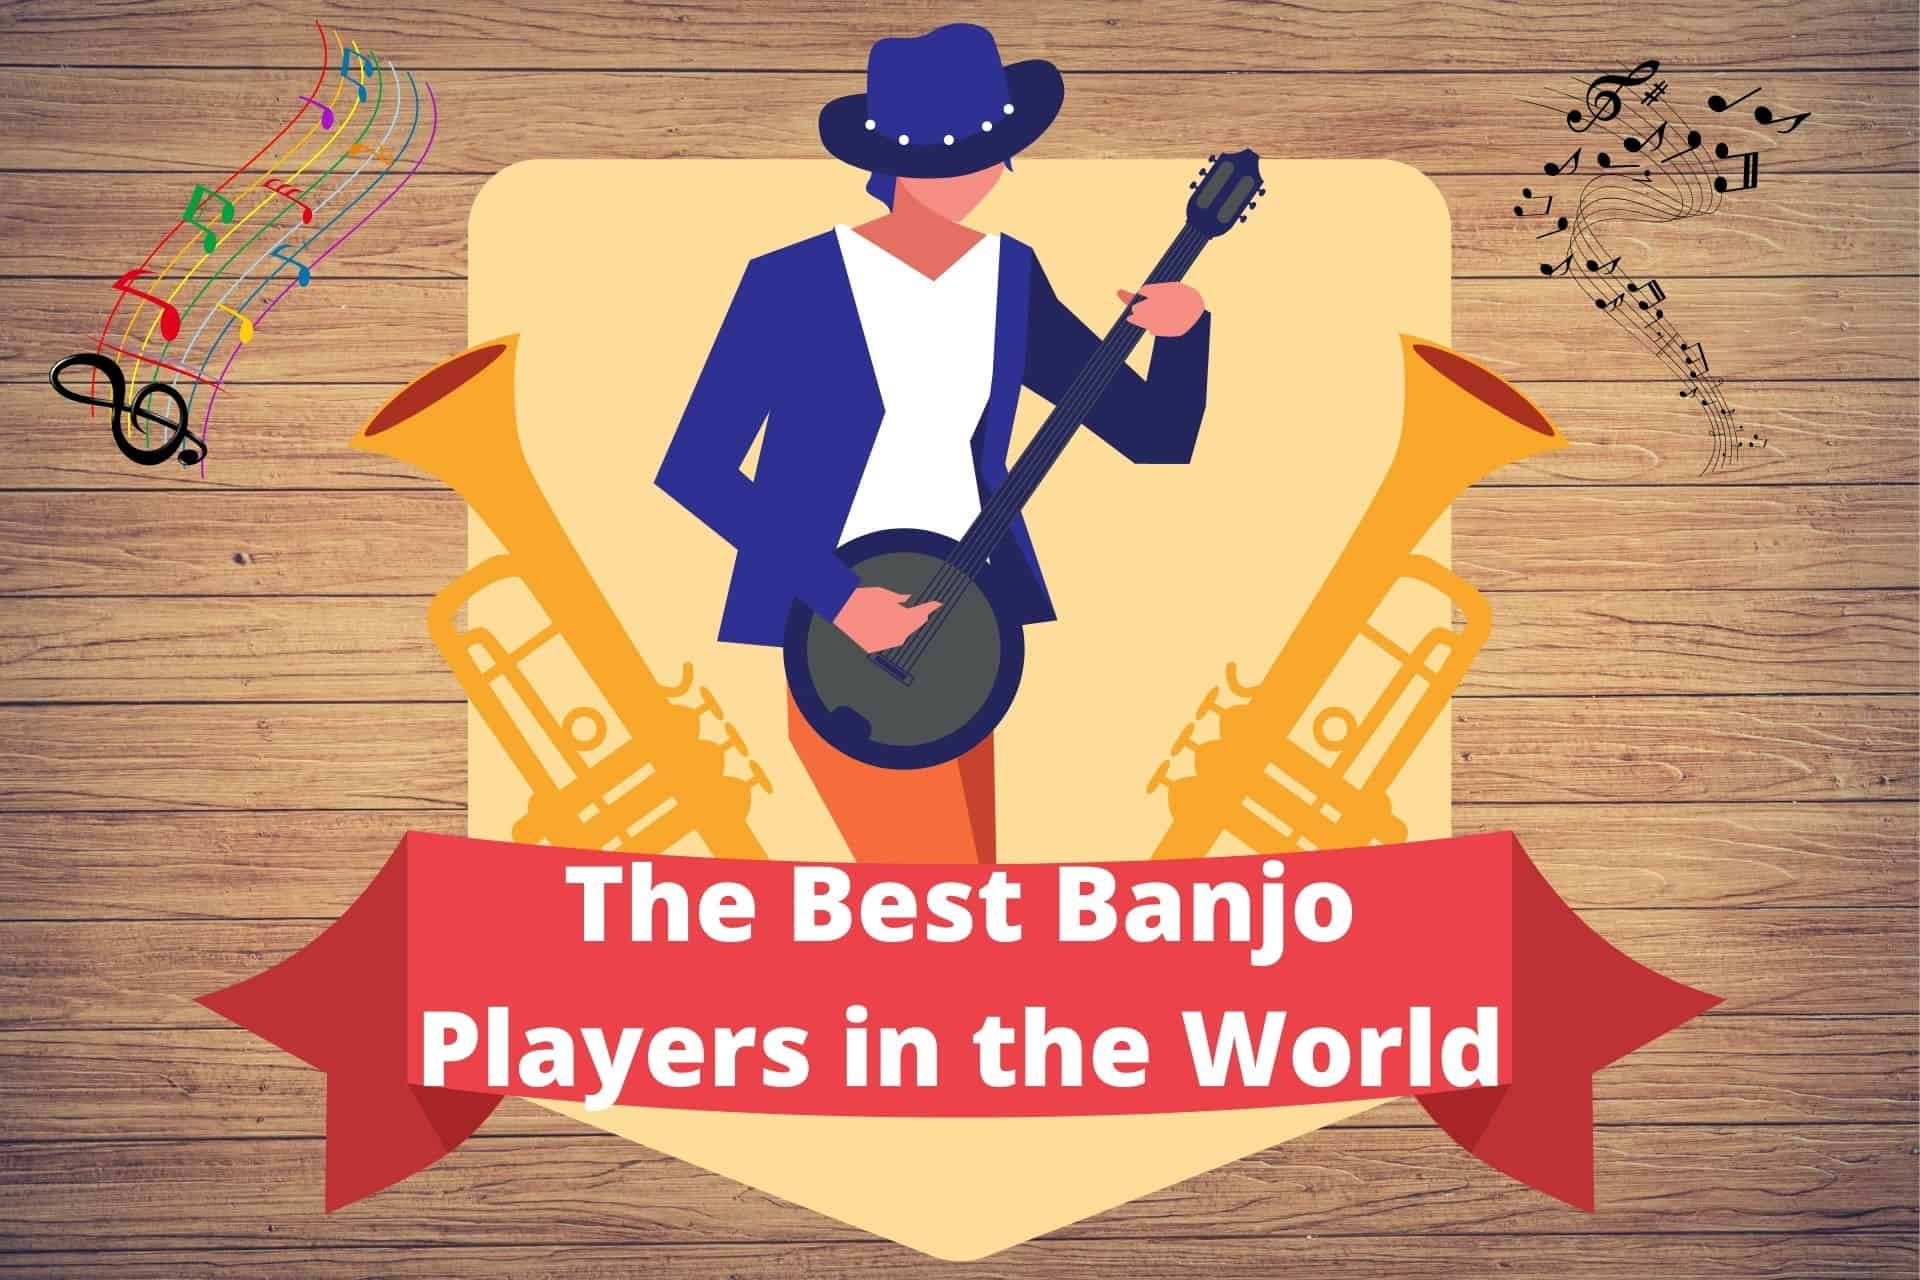 Who is the Best Banjo Player of all Time